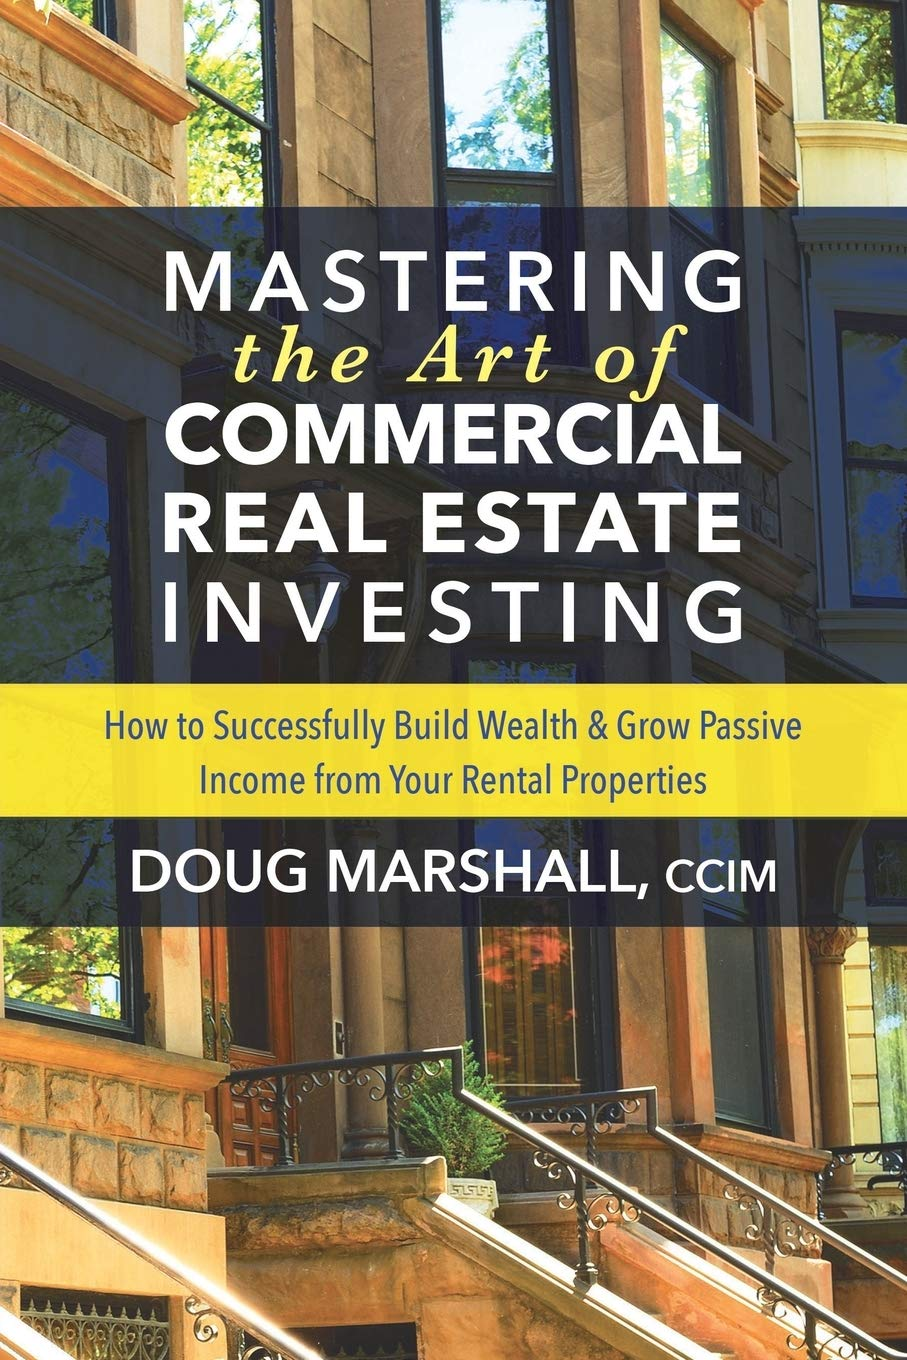 Mastering The Art Of Commercial Real Estate Investing How To Successfully Build Wealth And Grow Passive Income From Your Rental Properties Marshall Ccim Doug 9781642790153 Amazon Com Books